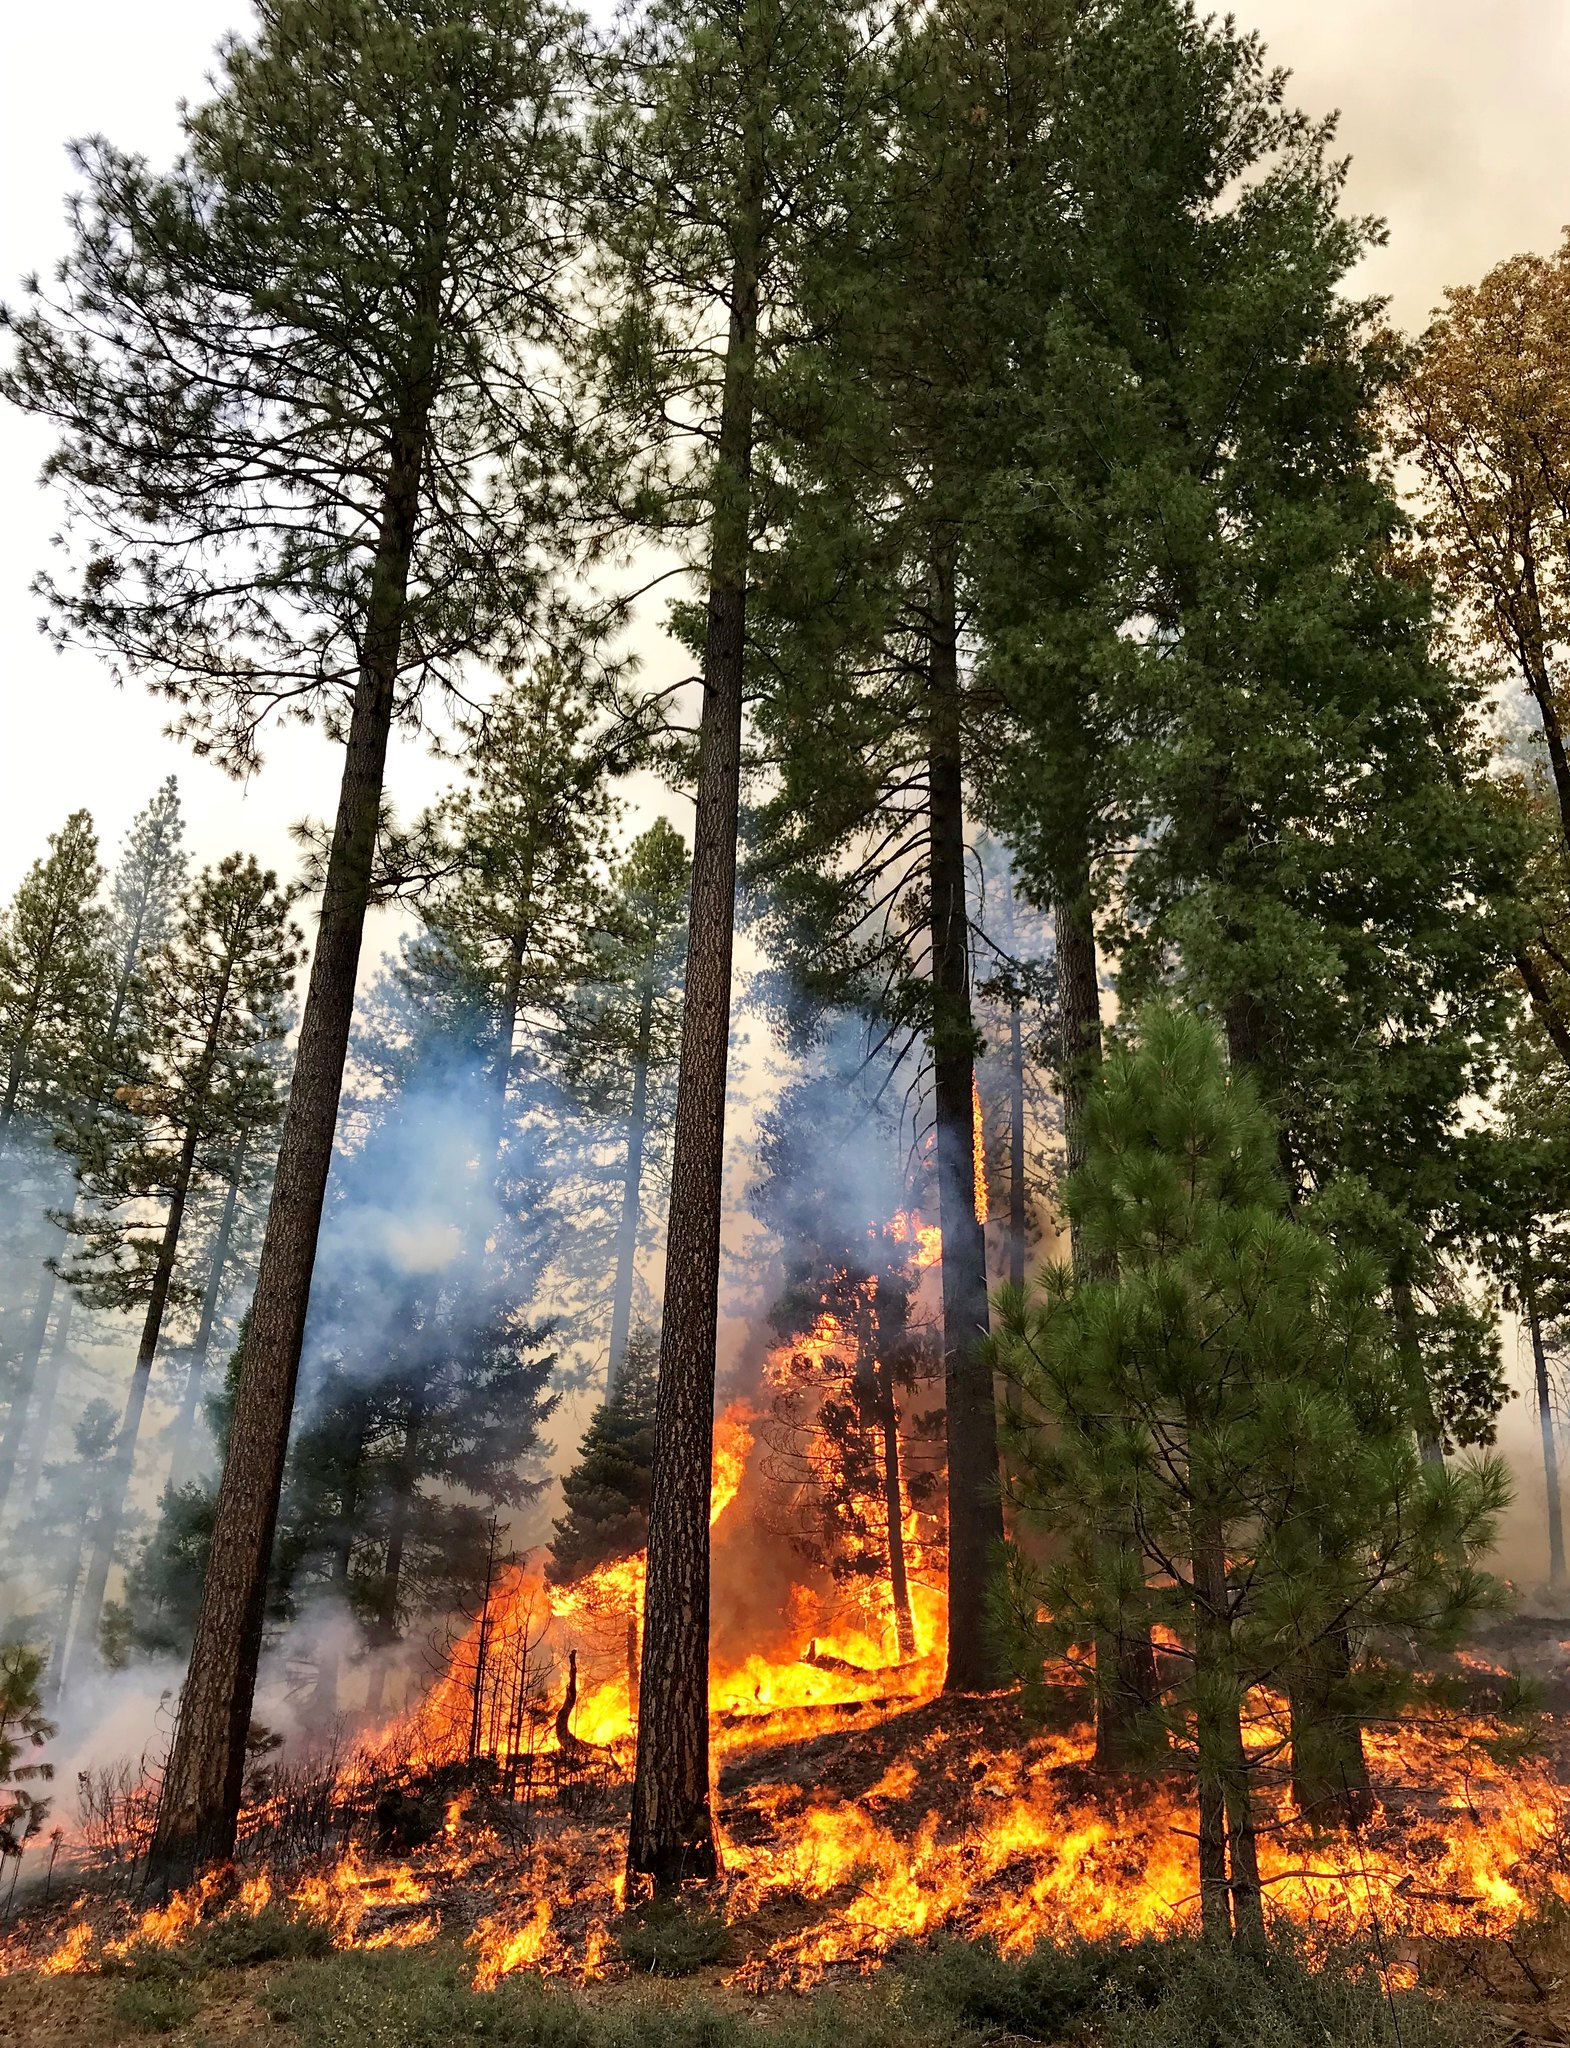 Tall trees and a fire in the forest during a prescribed burn